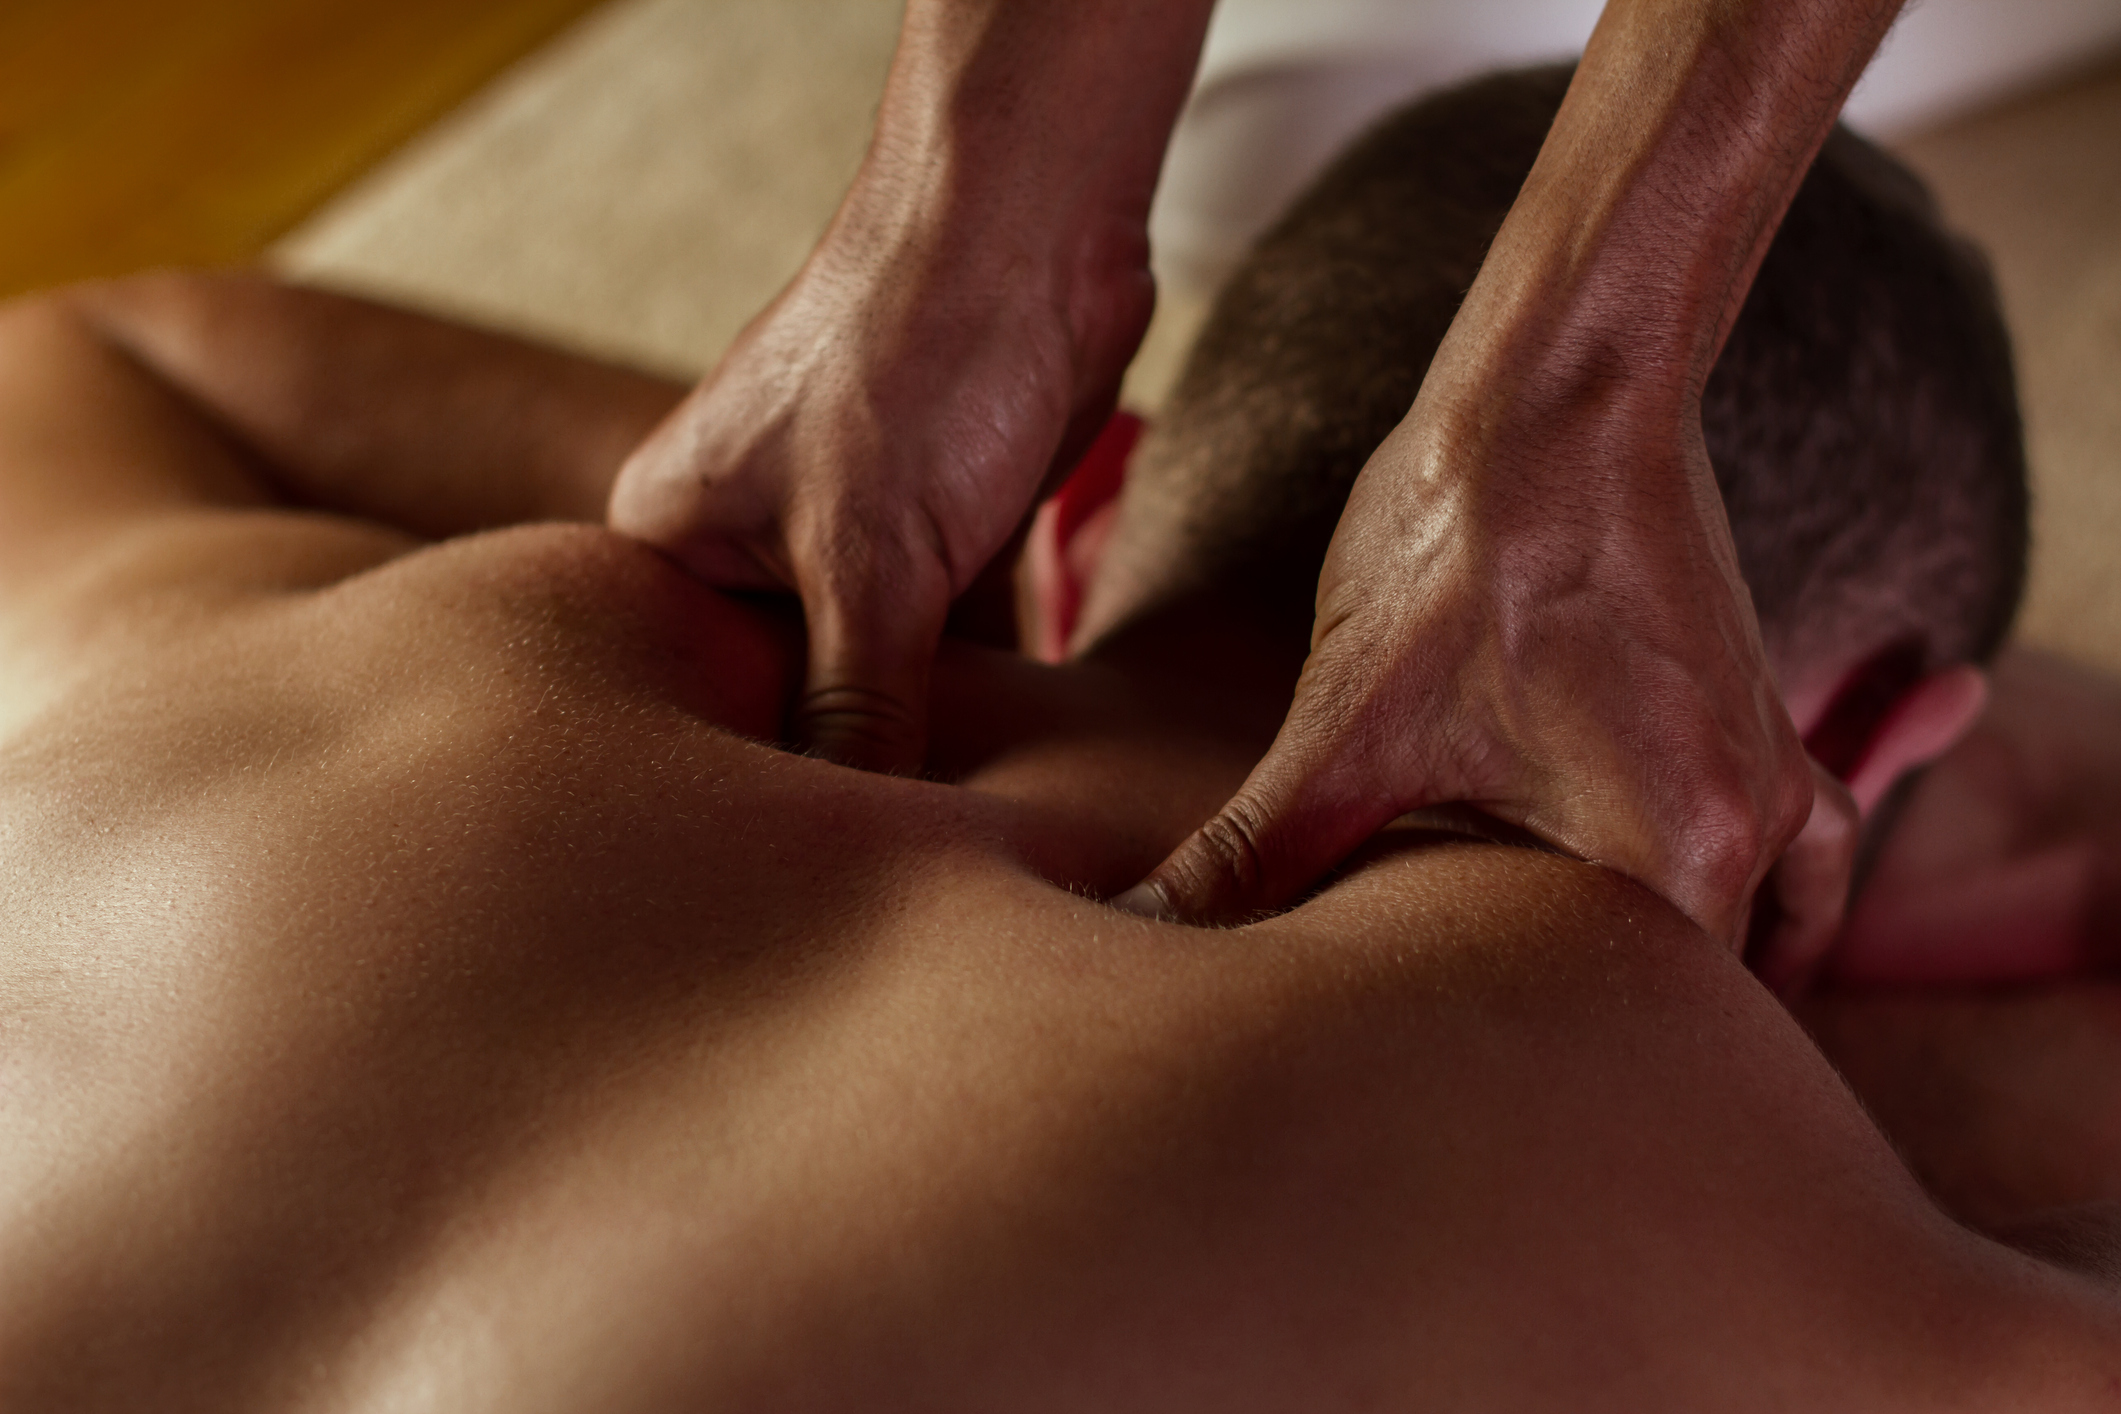 A man receiving deep tissue massage on his shoulders and neck.